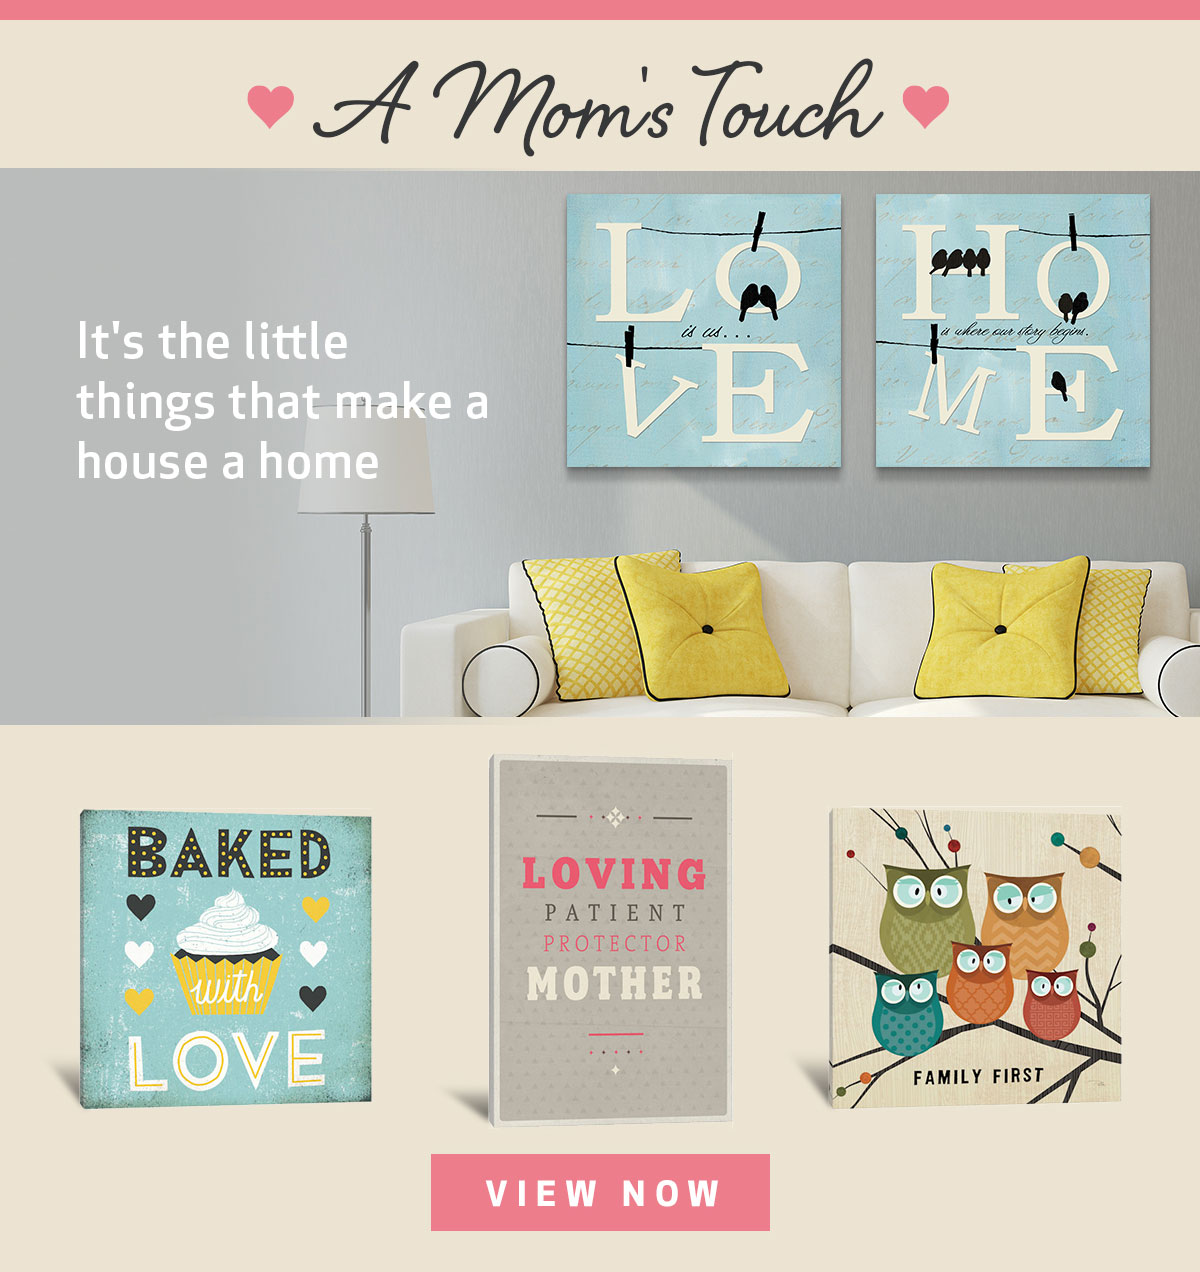 moms-touch